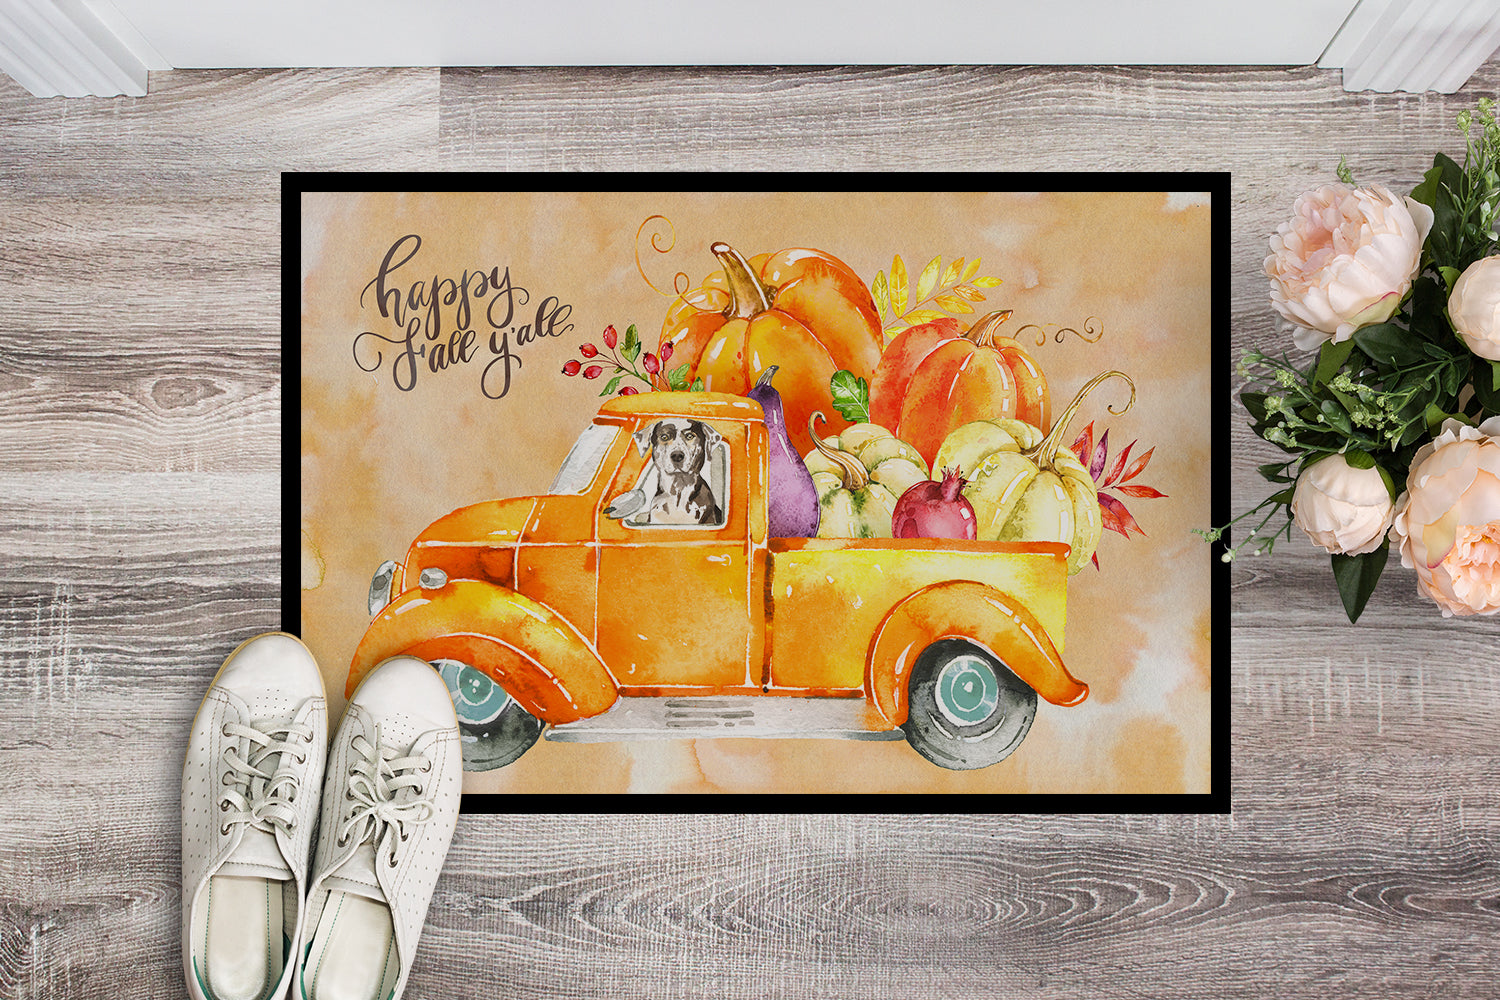 Fall Harvest Catahoula Leopard Dog Indoor or Outdoor Mat 18x27 CK2614MAT by Caroline's Treasures